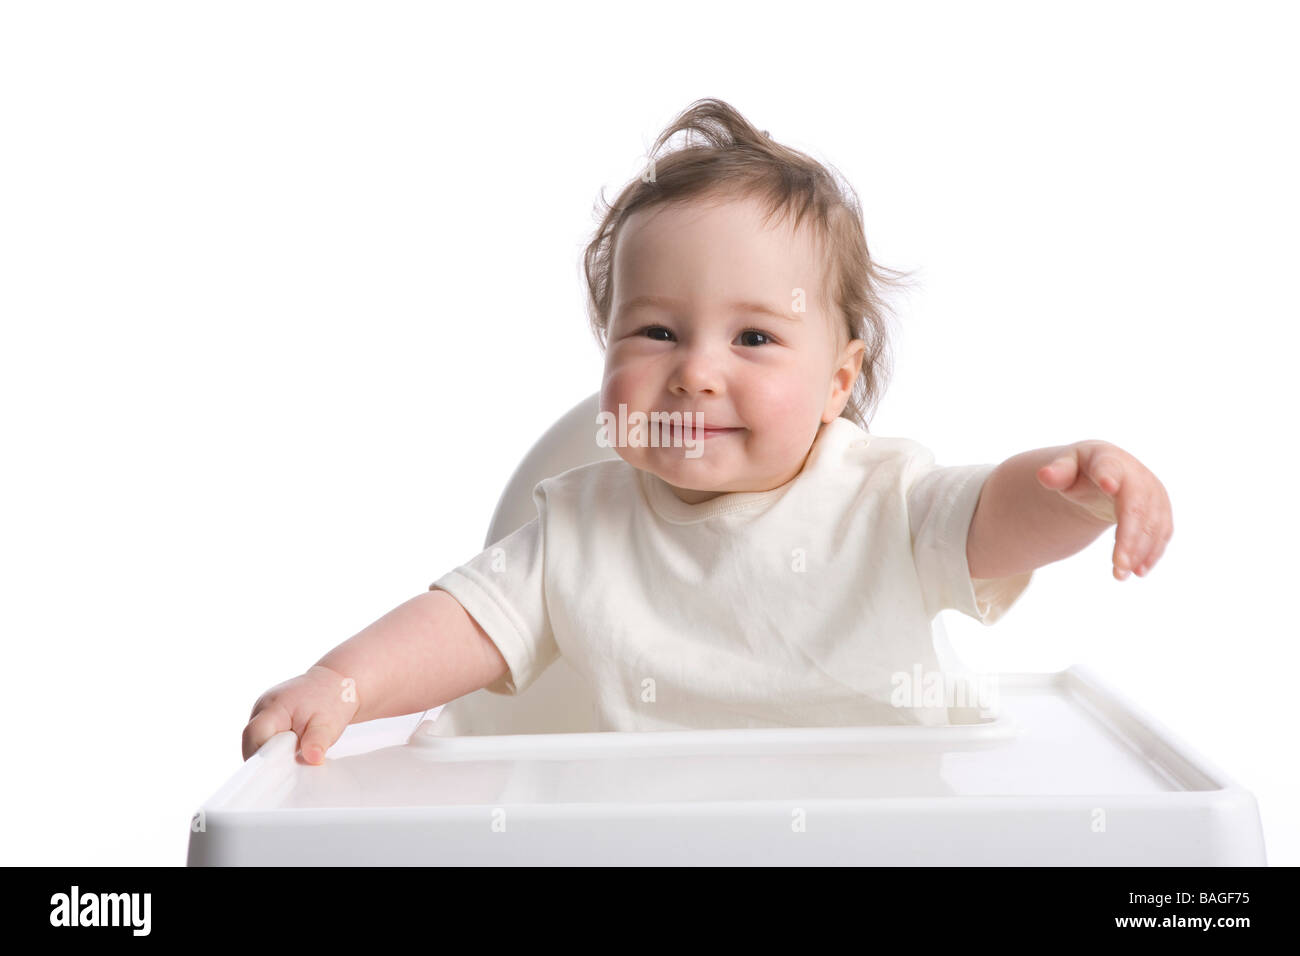 Toddler girl in a bay-chair - Stock Image